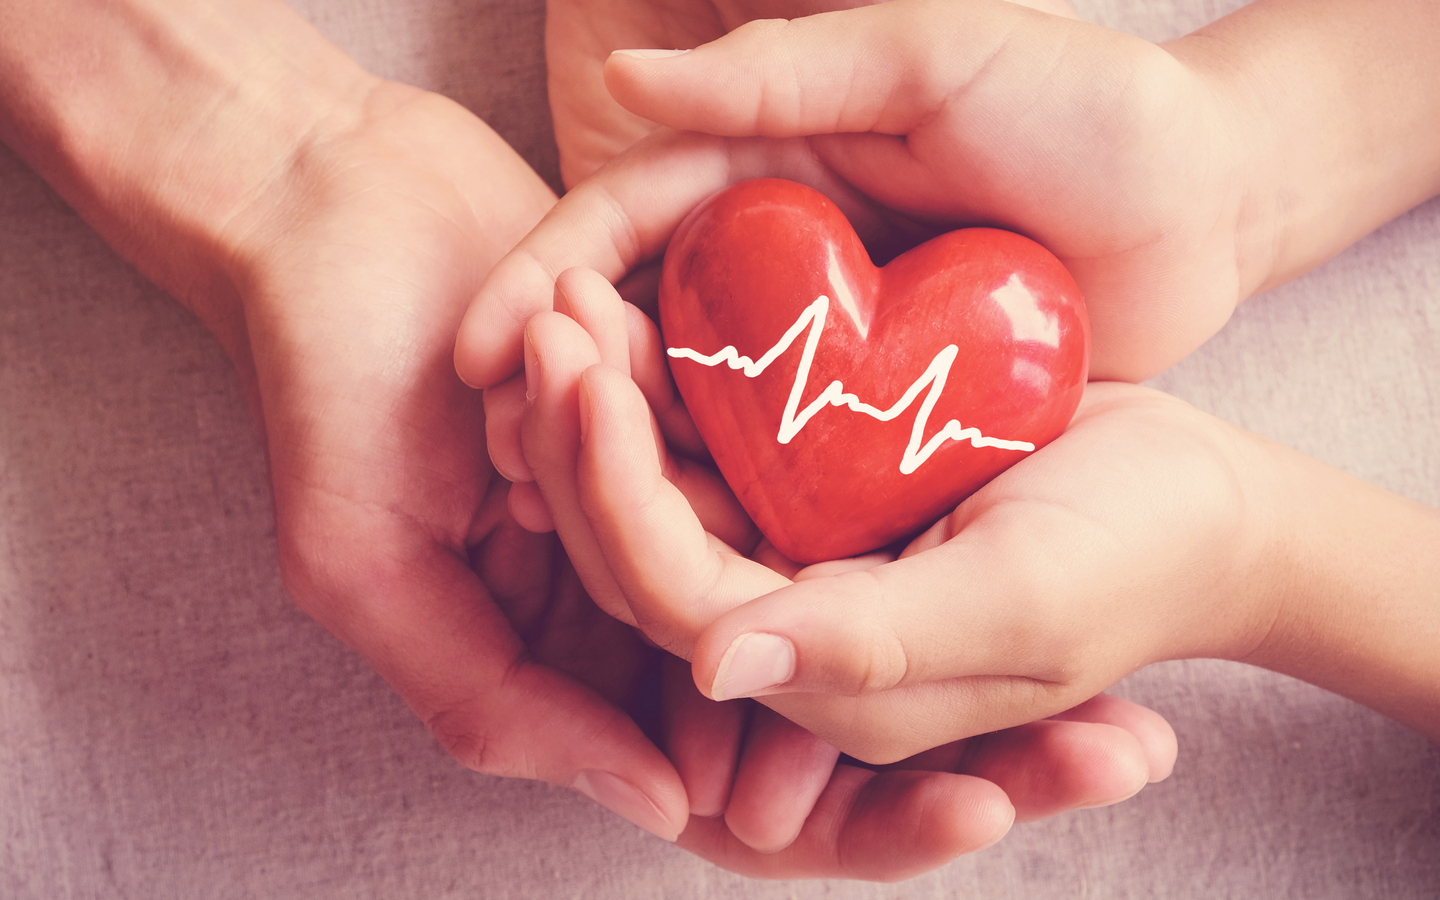 Cardiovascular diseases are also a growing global health concern